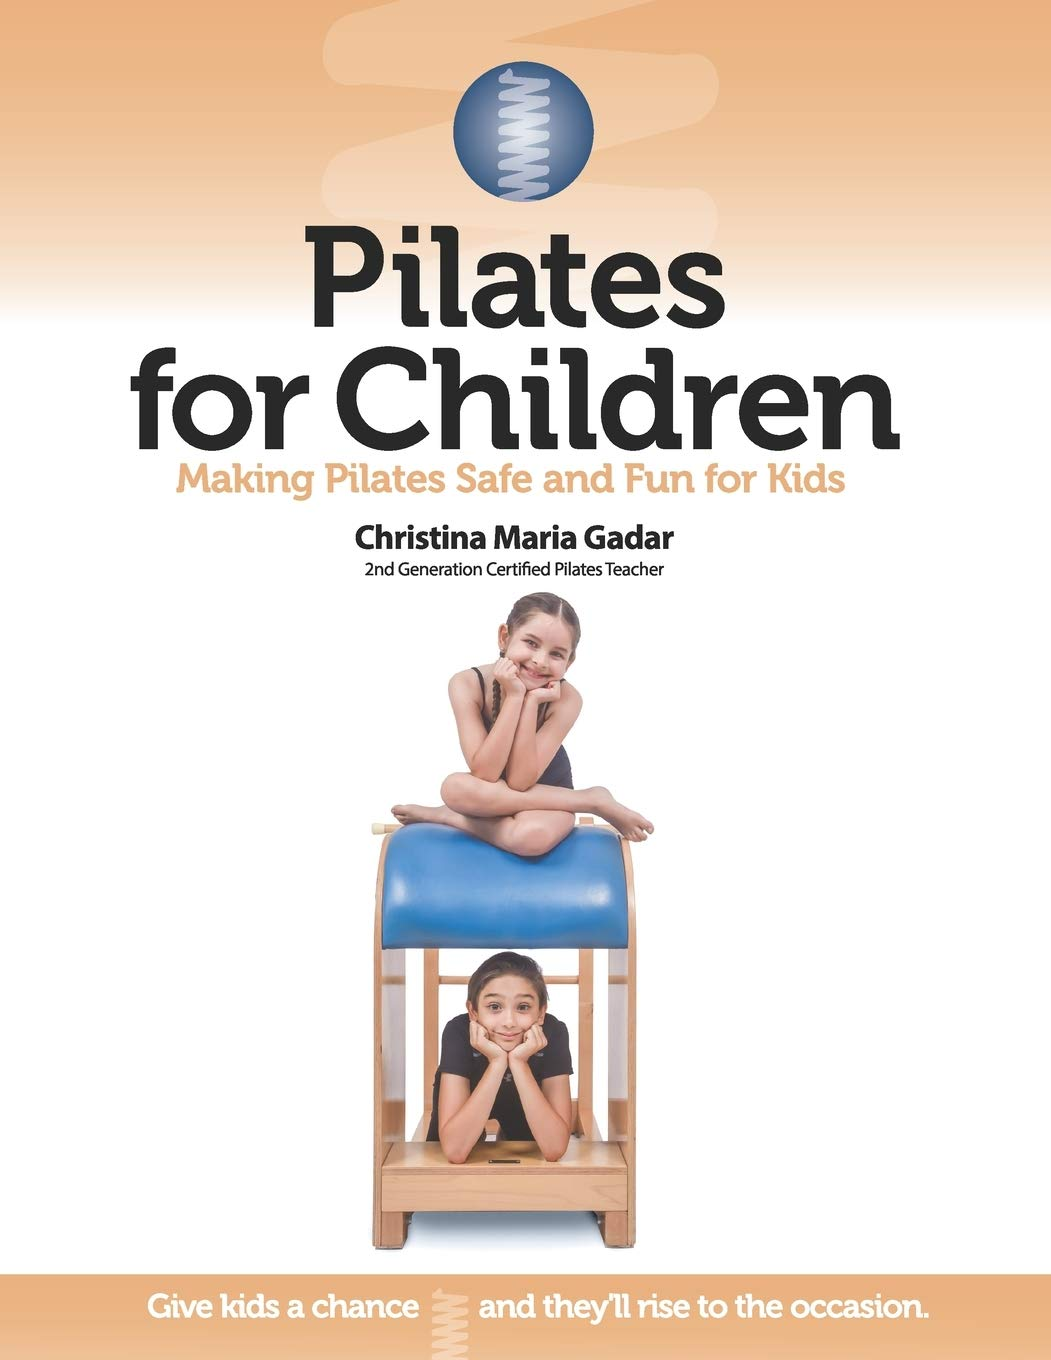 Pilates for Children: Making Pilates Safe and Fun for Kids